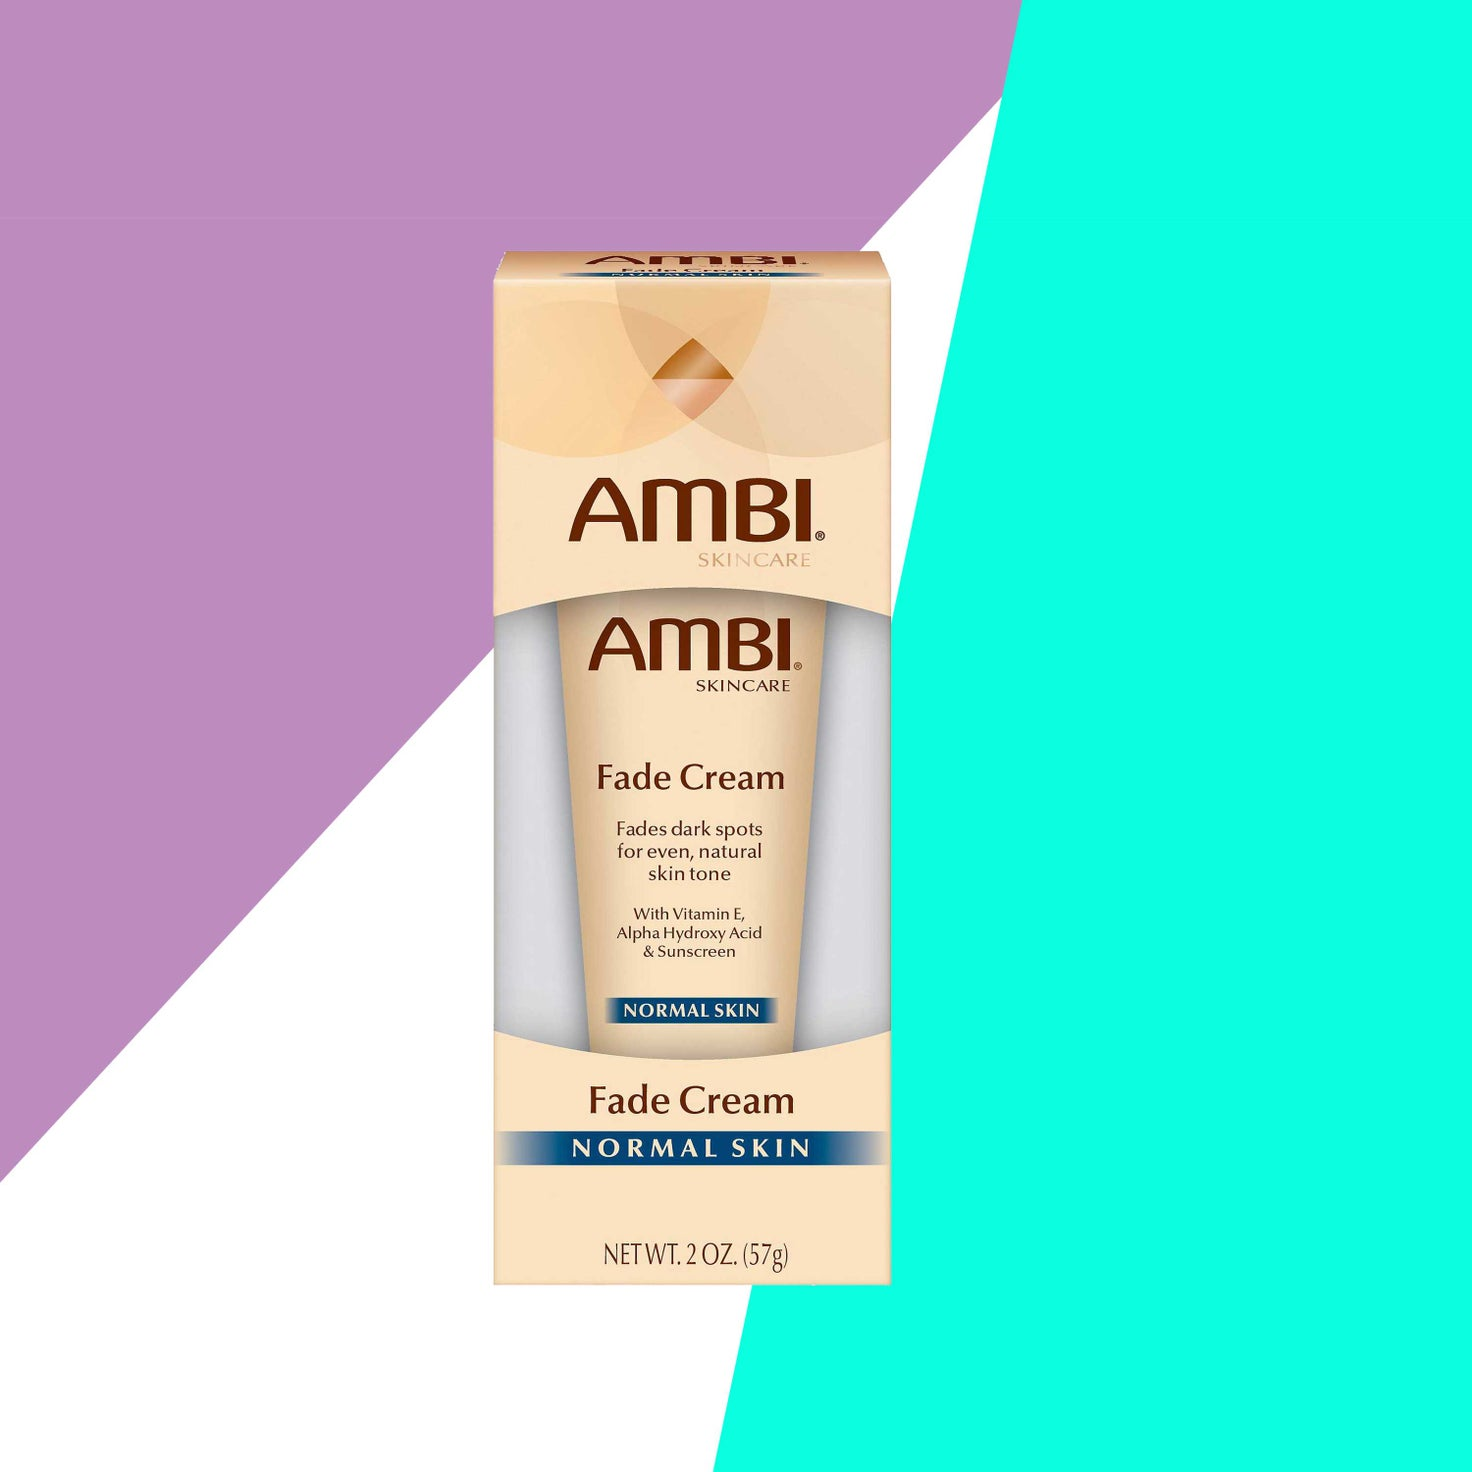 15 Products That Will Help Fix Your Hyperpigmentation